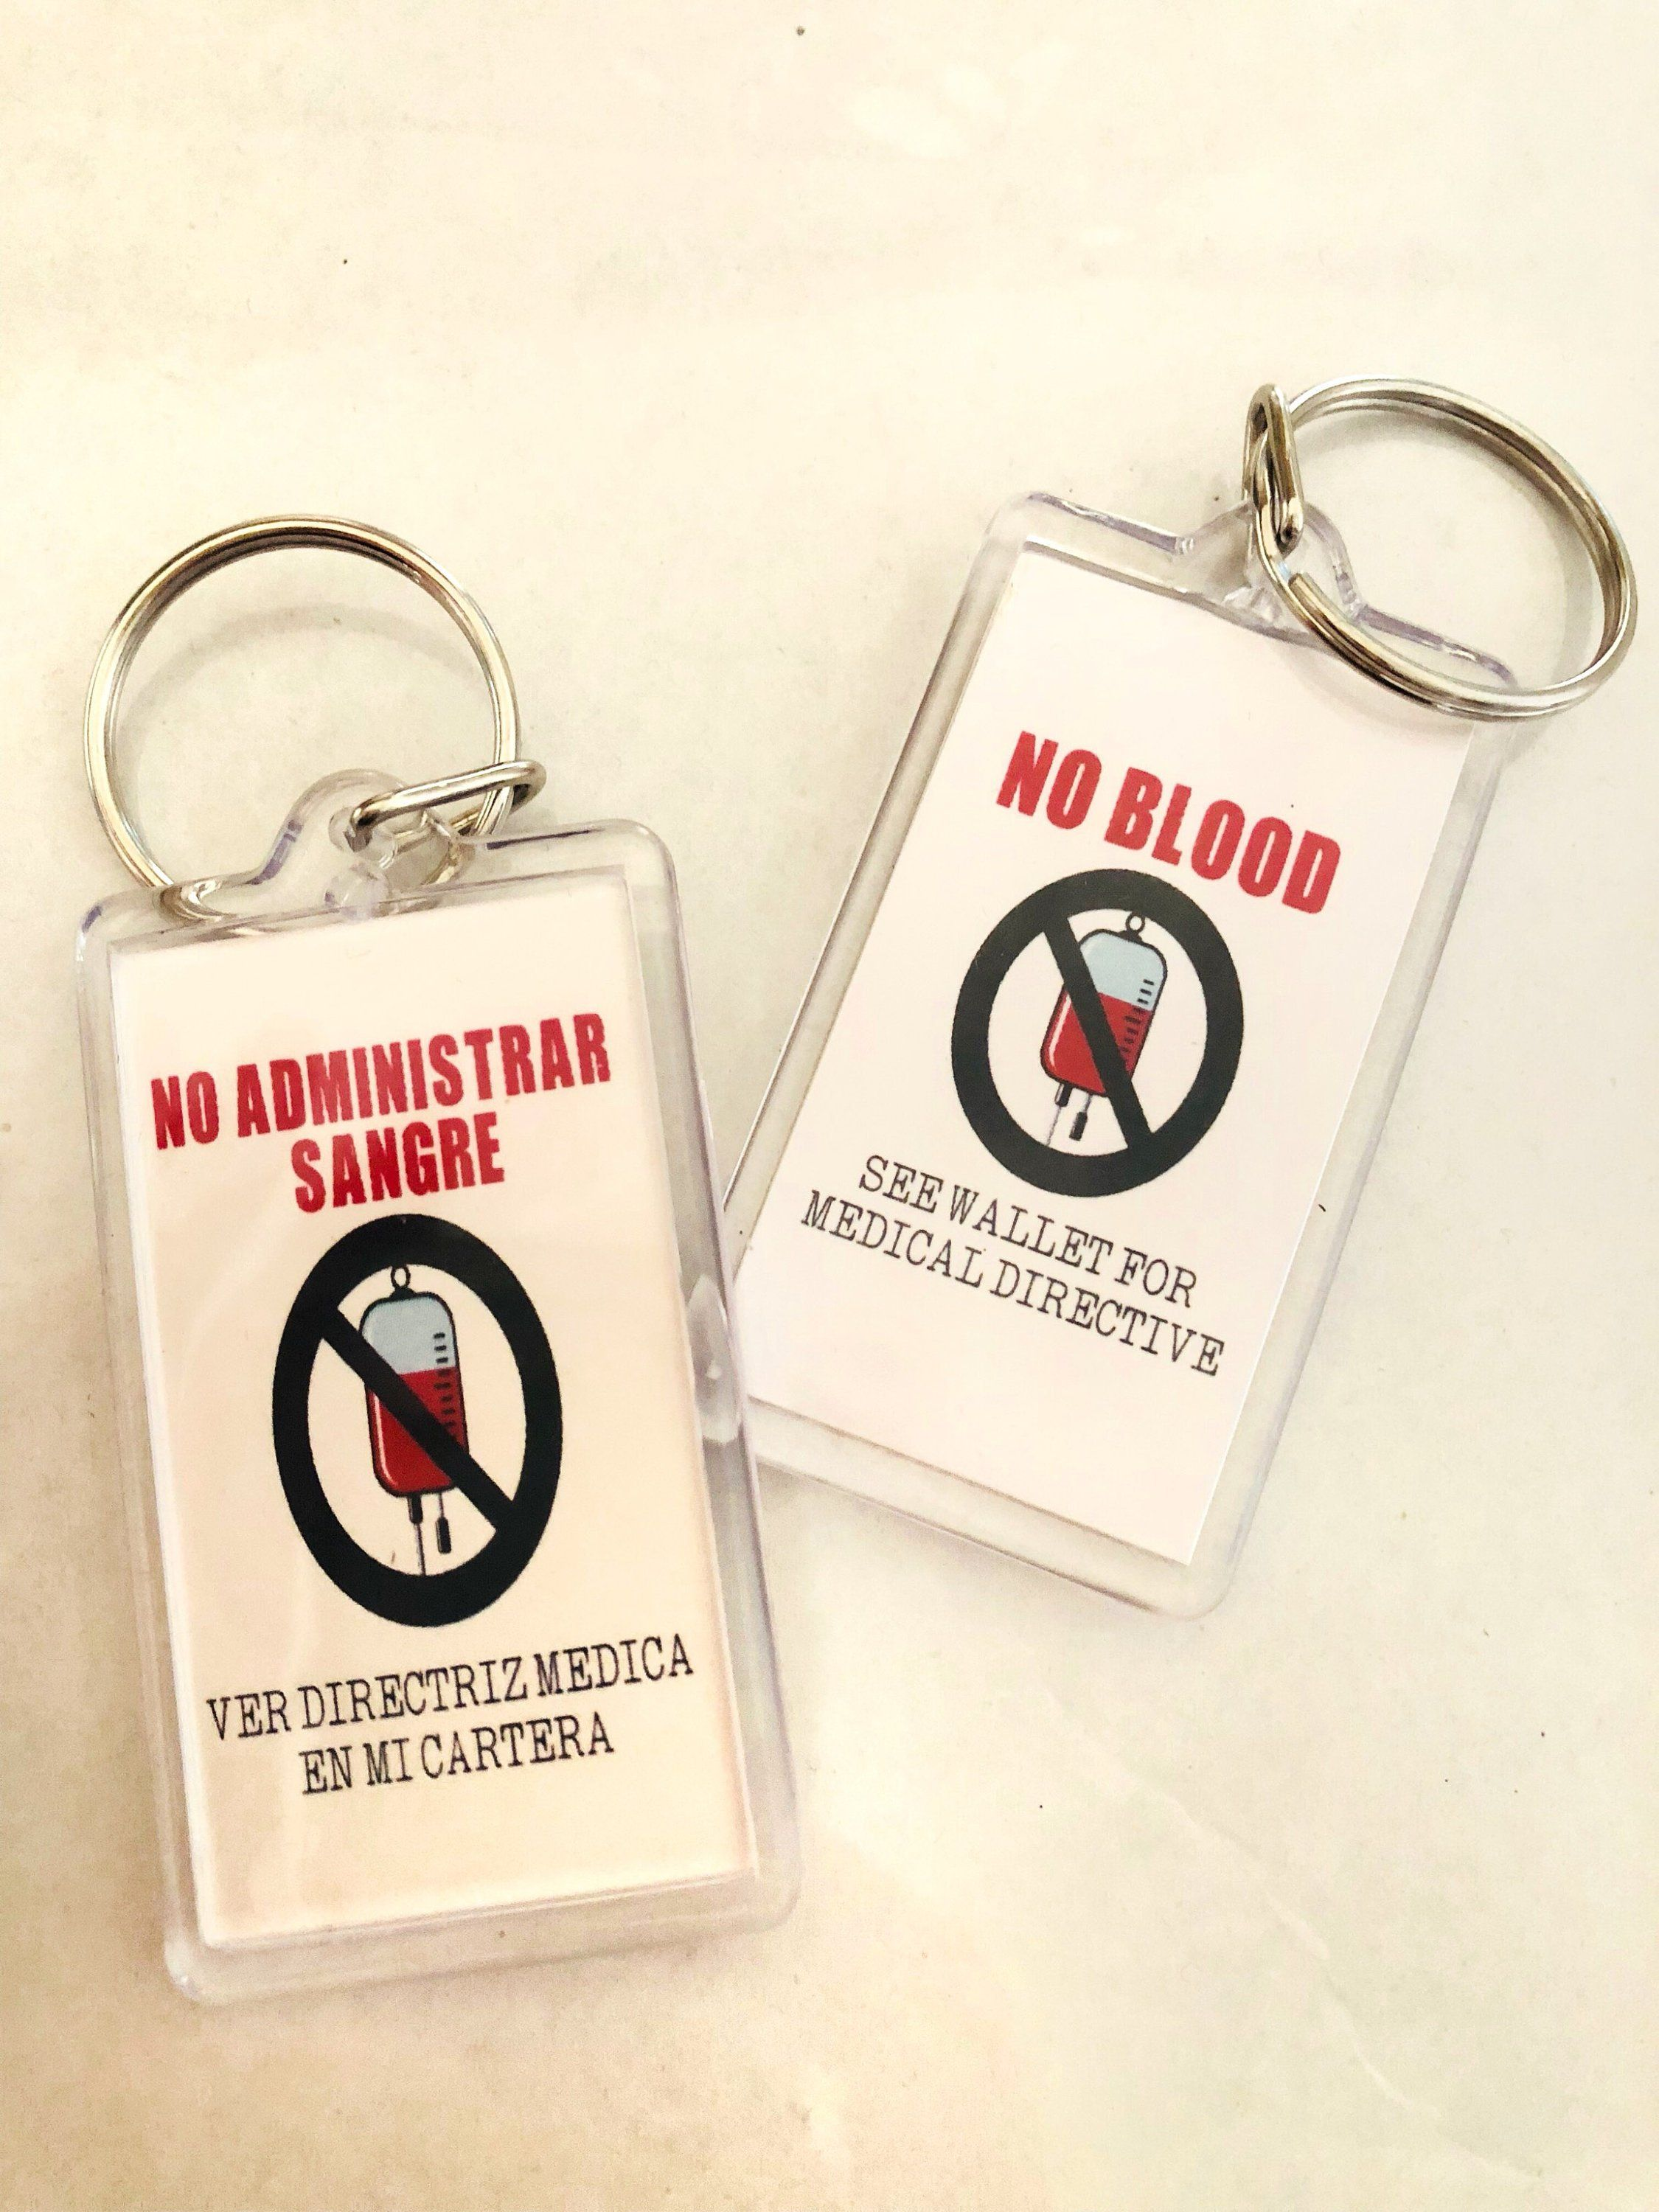 4 Double sided No blood keychain/ No sangre/ Regional